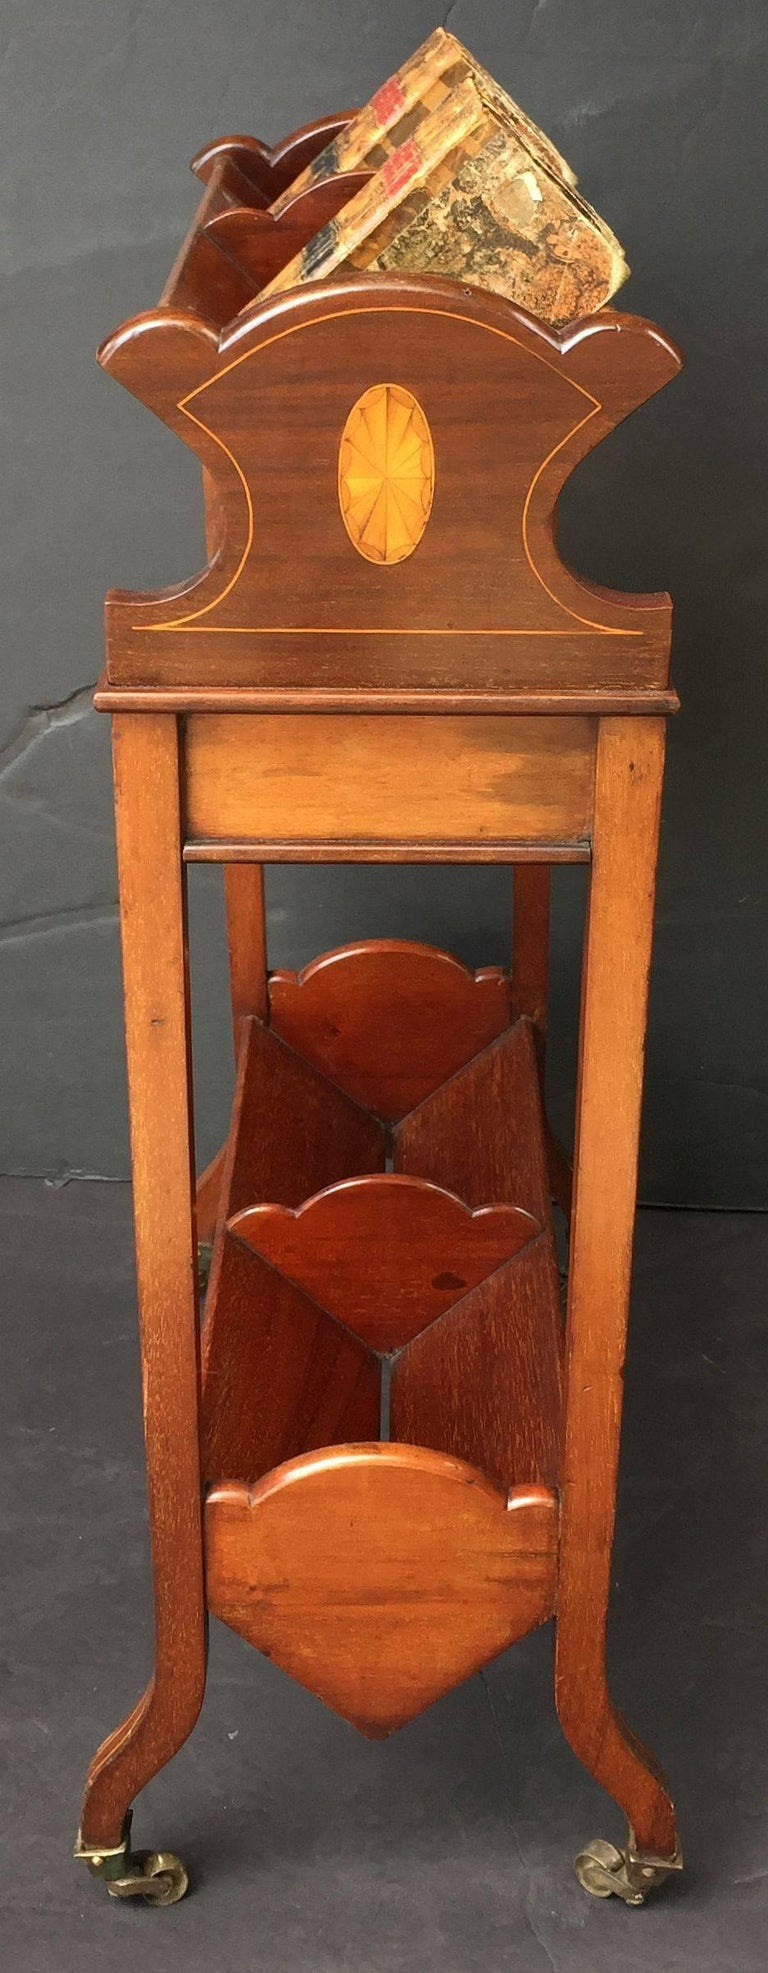 English Bookstand of Inlaid Mahogany from the Edwardian Era For Sale 1